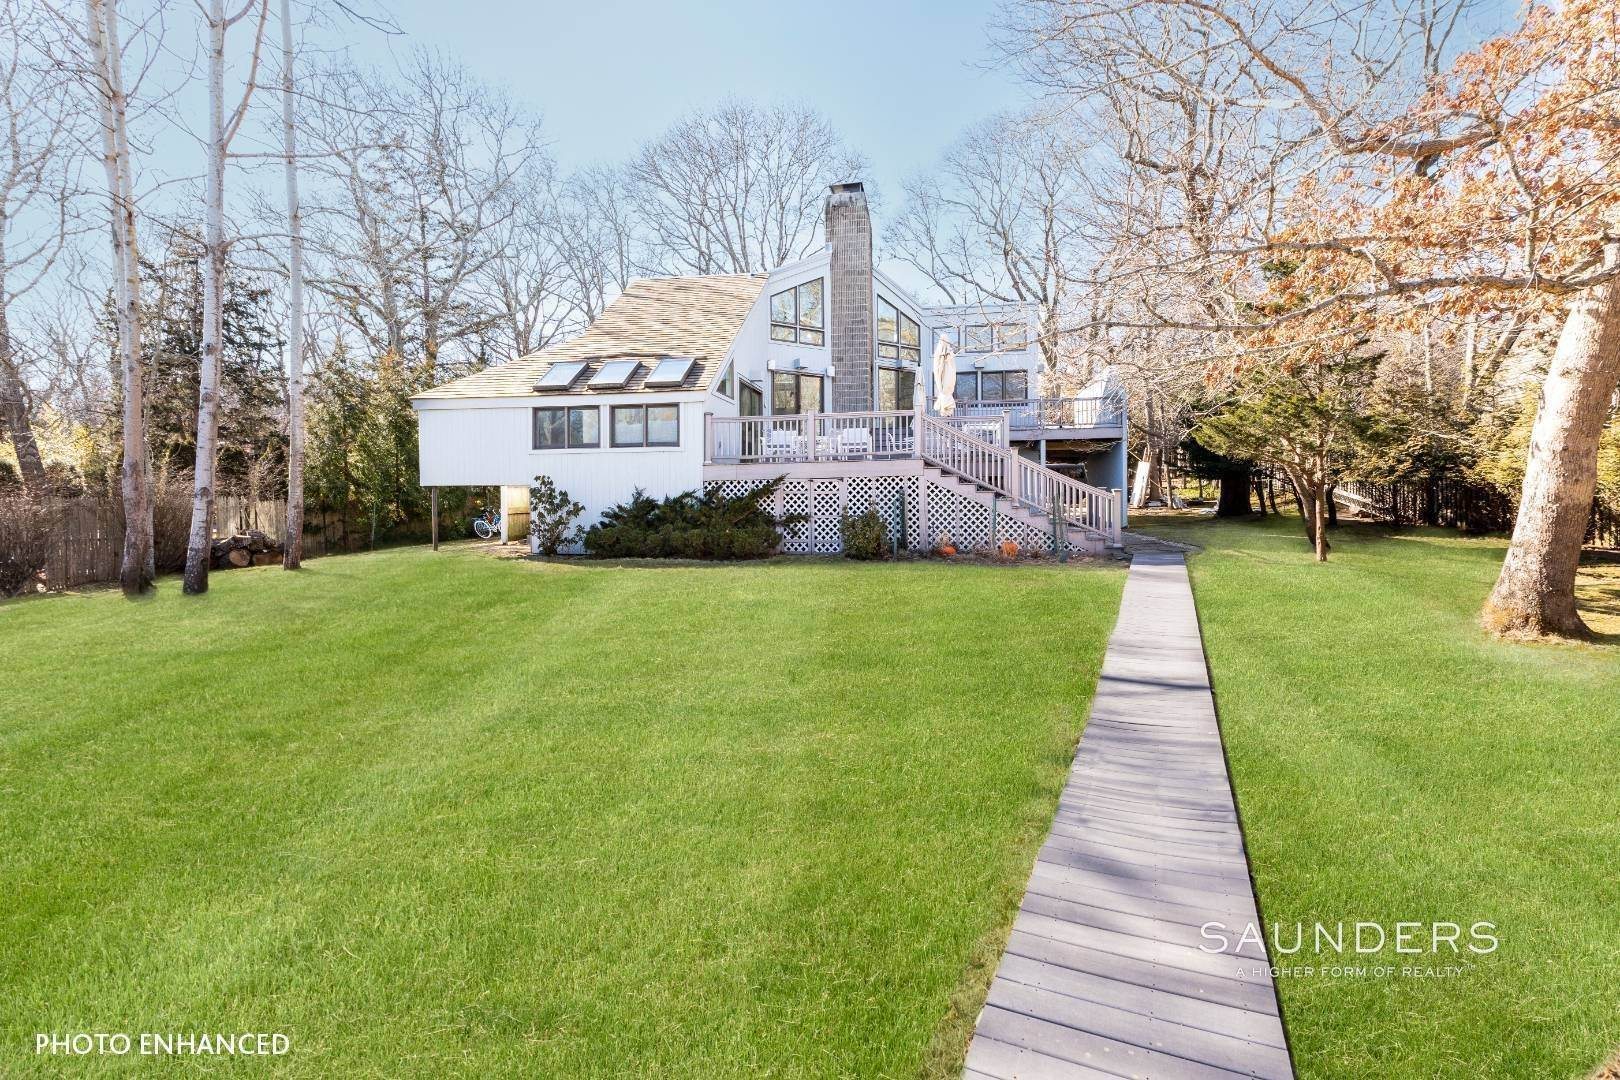 Single Family Homes for Sale at The Ultimate Waterfront Lifestyle Retreat 15 Isle Of Wight Road, East Hampton, East Hampton Town, NY 11937